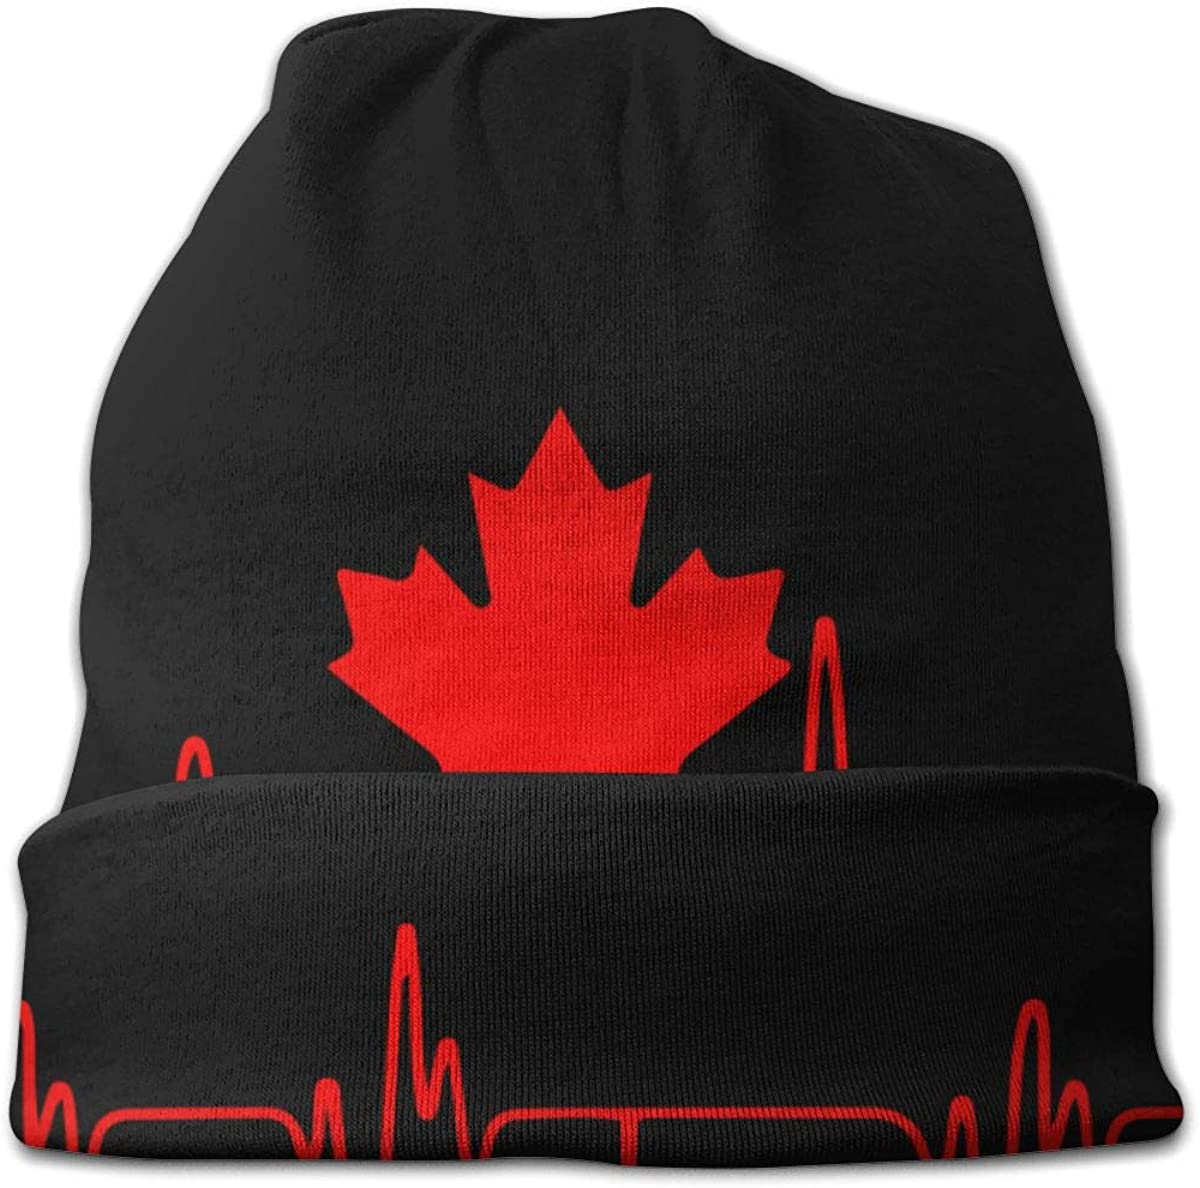 Heartbeat Canada Women Men Solid Color Beanie Hat Thin Stretchy /& Soft Winter Cap